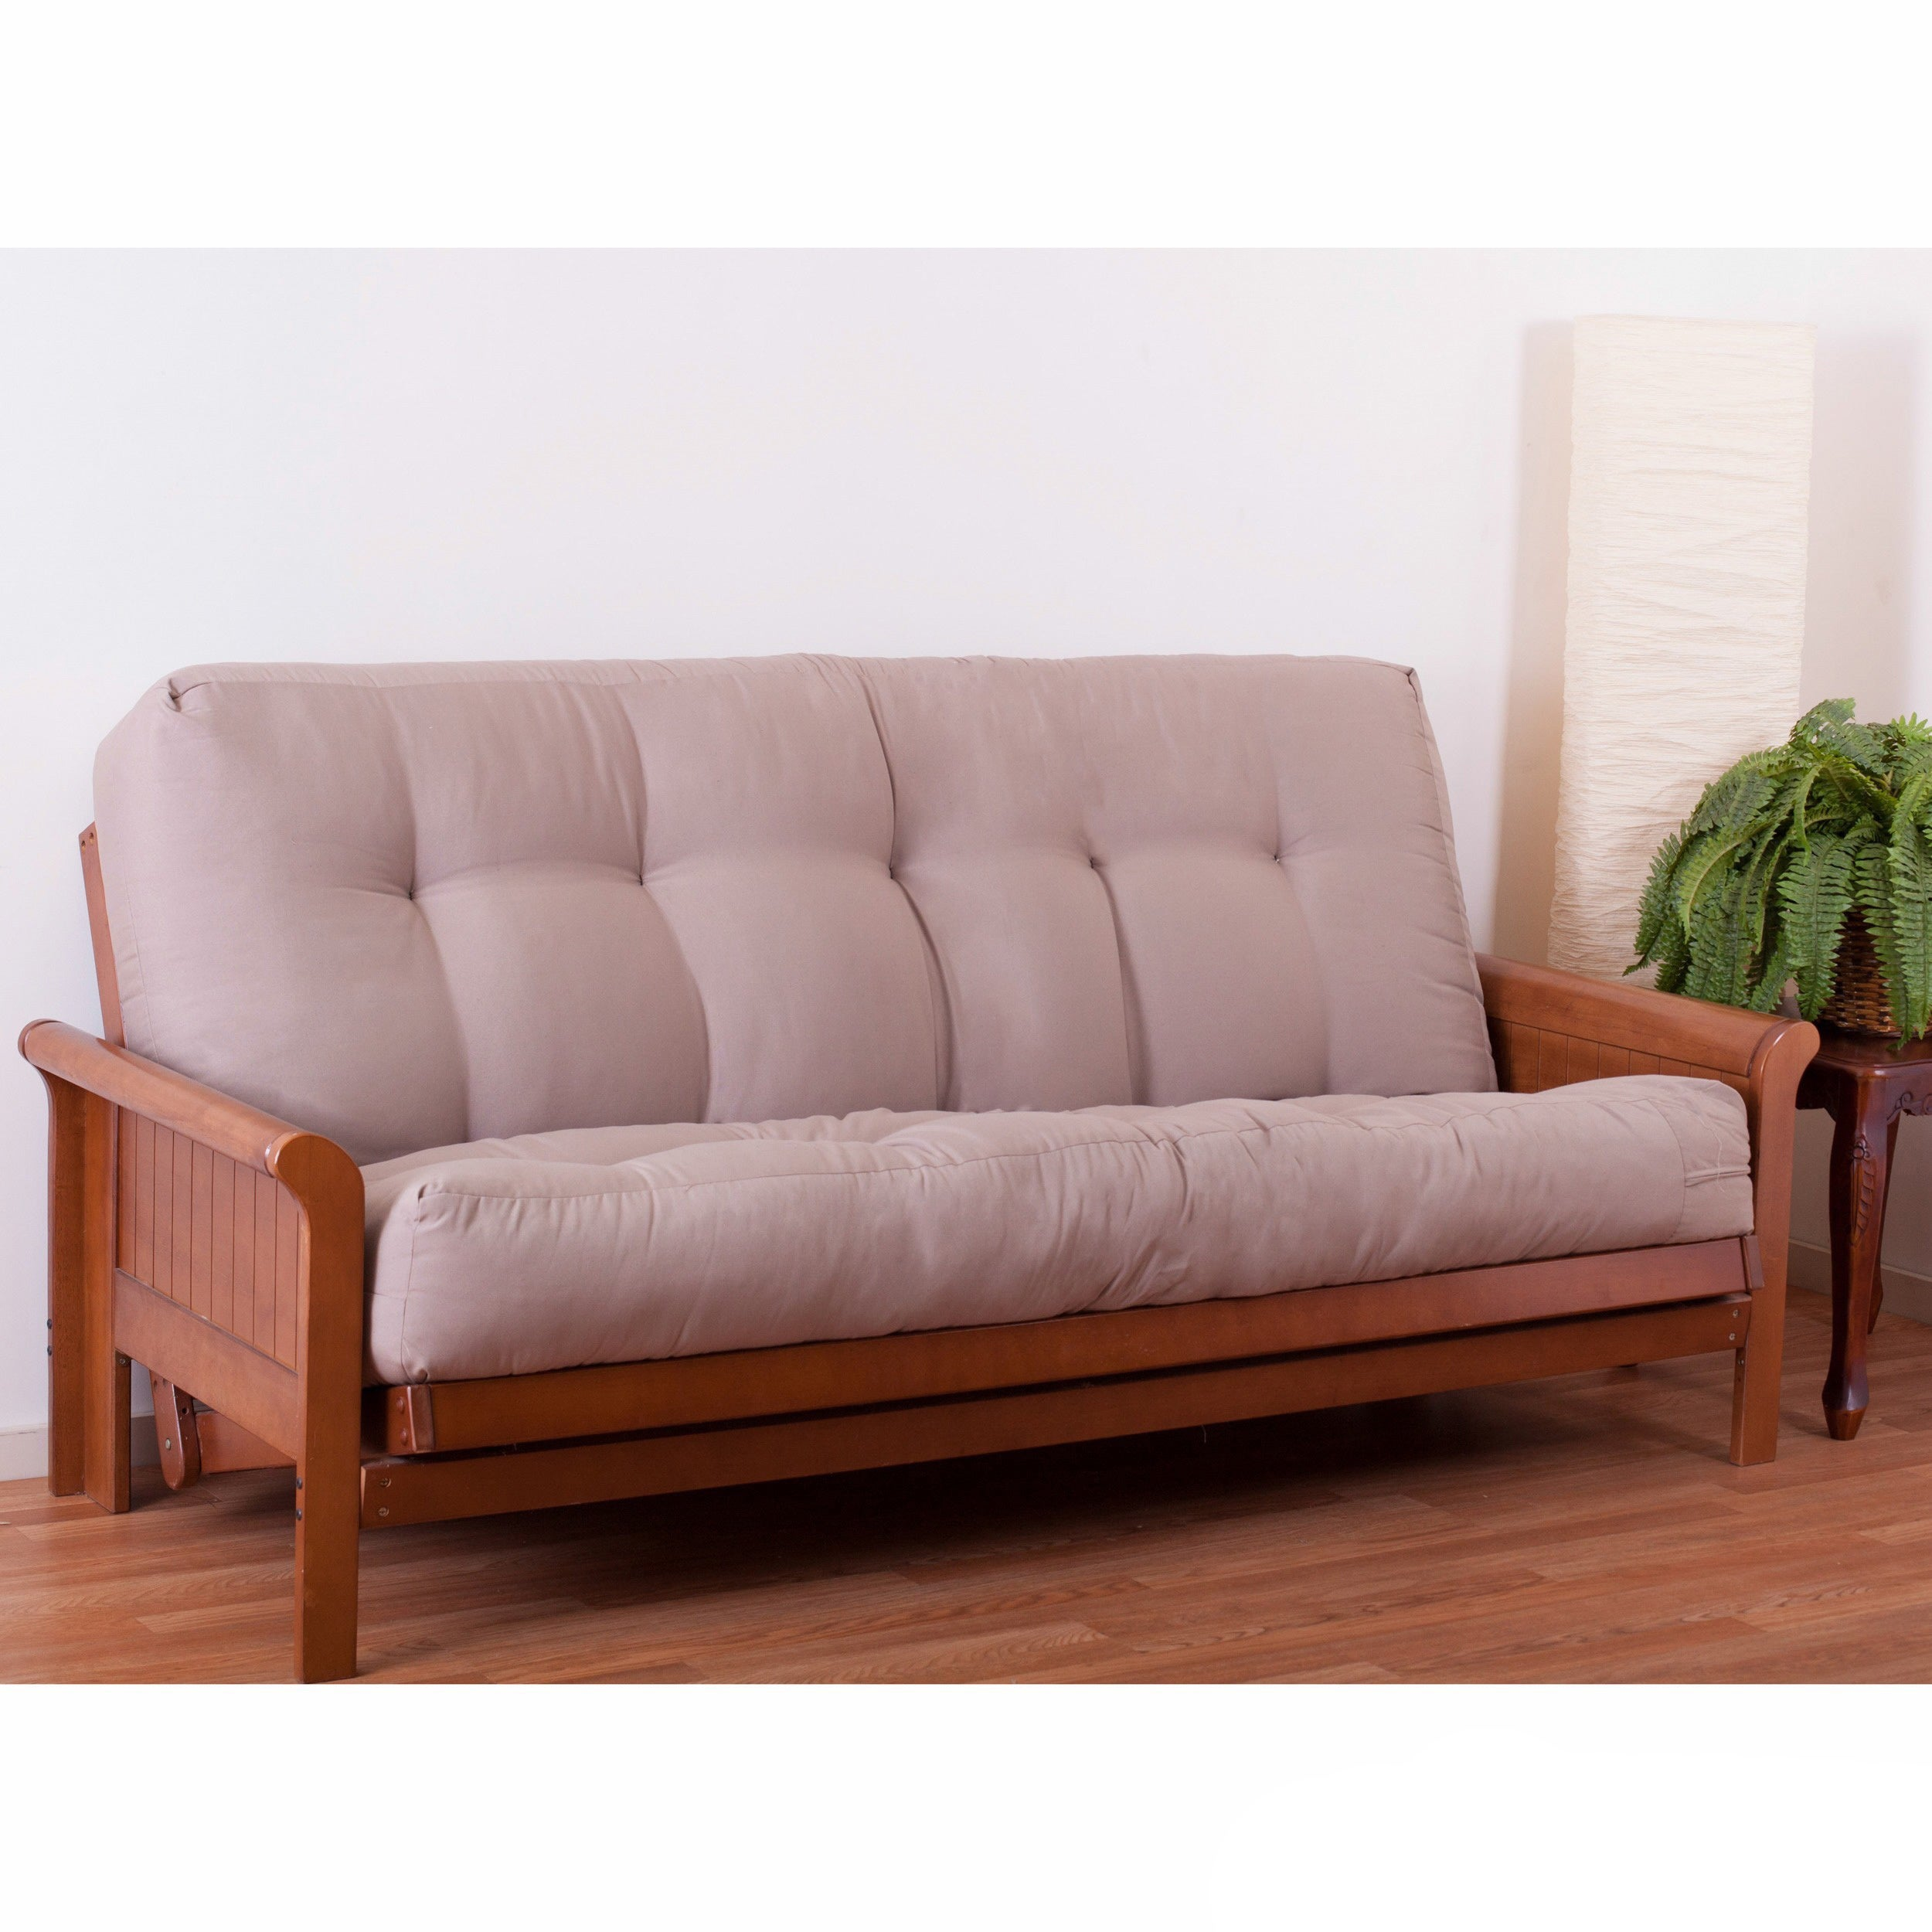 futon home inch hansen twin cheap ebay mattress itm size clay mattresses alder